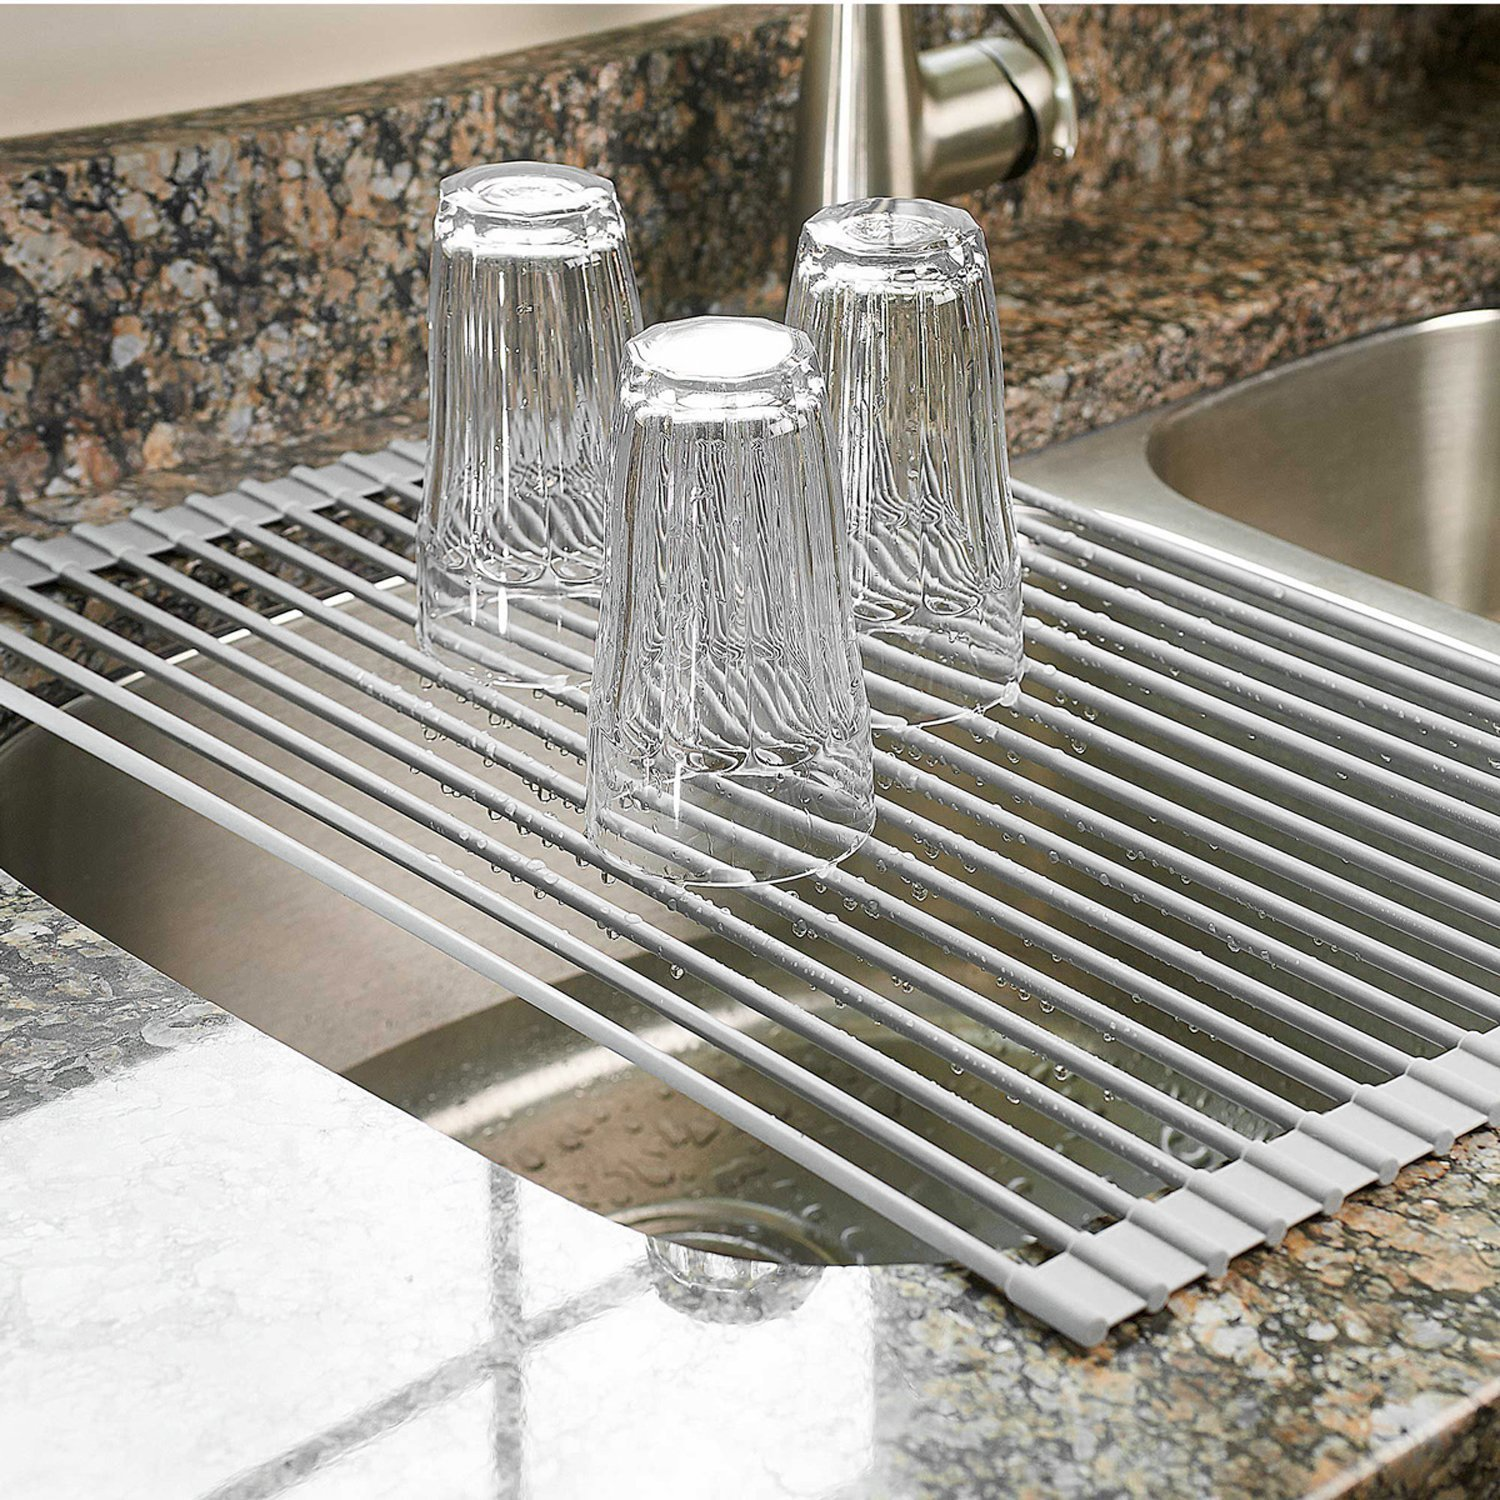 Over The Sink Dish Drying Rack - Kitchen Roll Up Dish Drainer Multipurpose Heat Resistant with Anti Slip Silicone Cover - Large 20 1/2''(L) x 13''(W) (Gray)